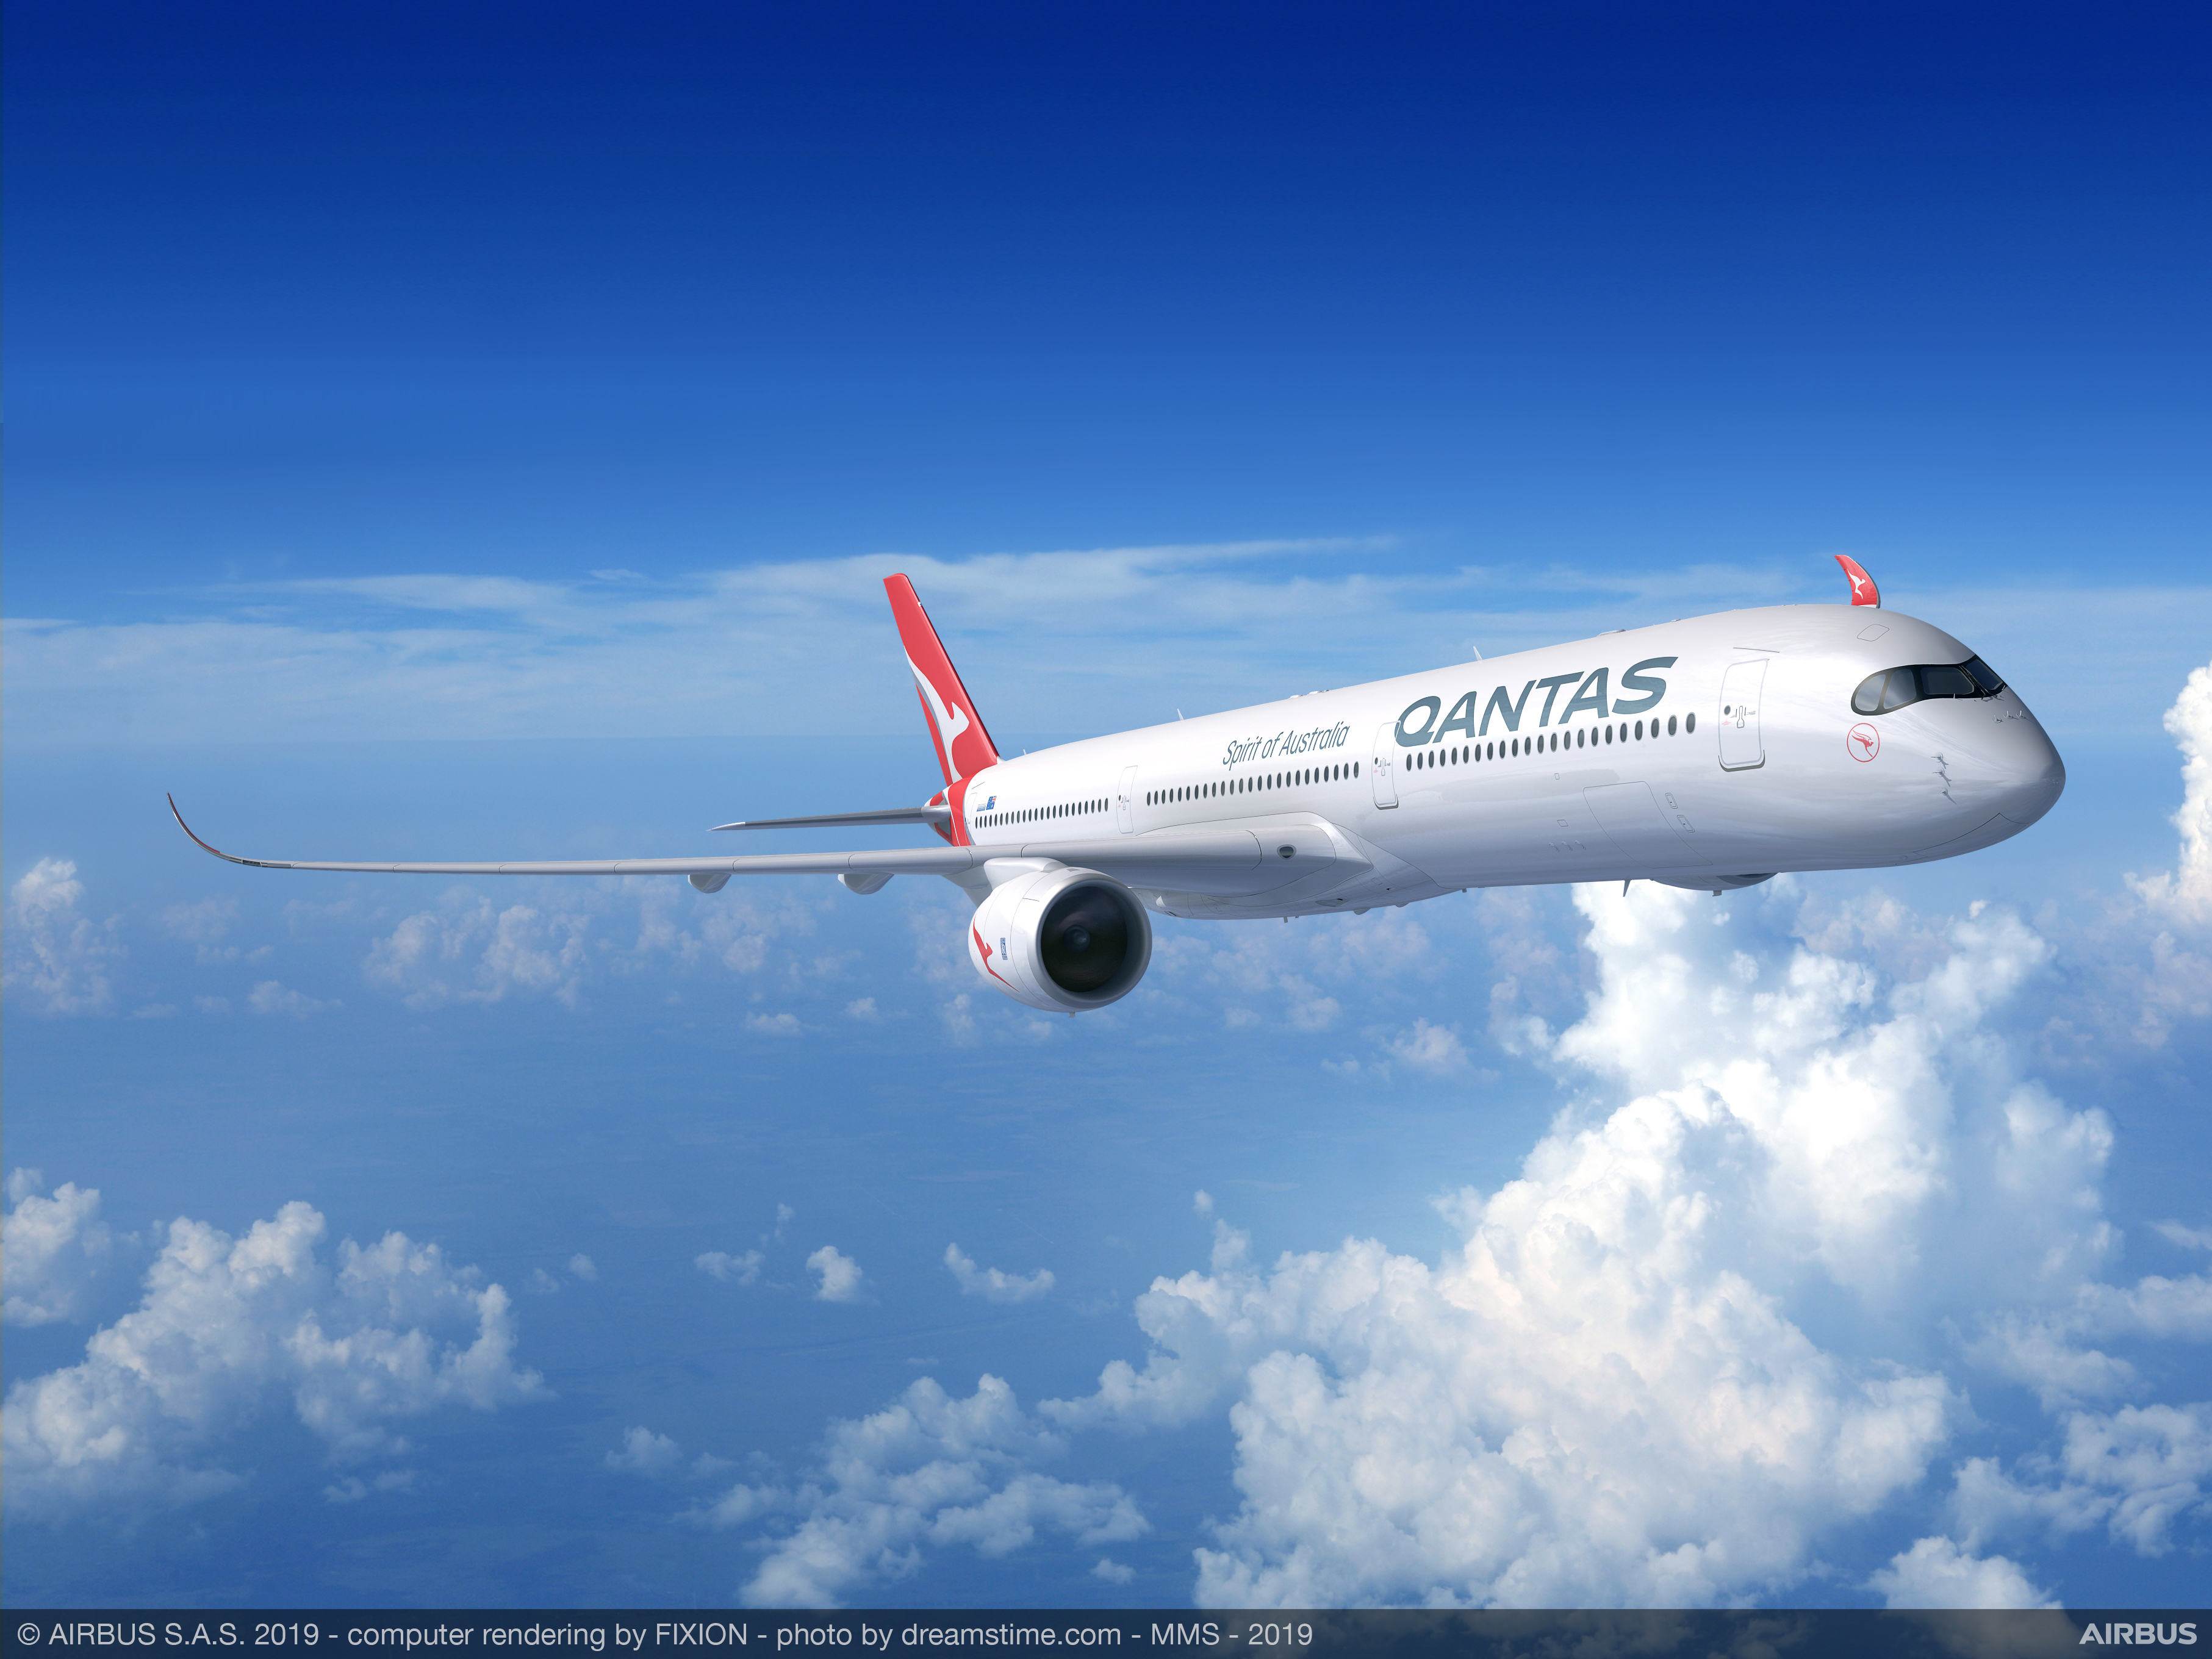 Qantas Considers Outsourcing, Staff Reductions